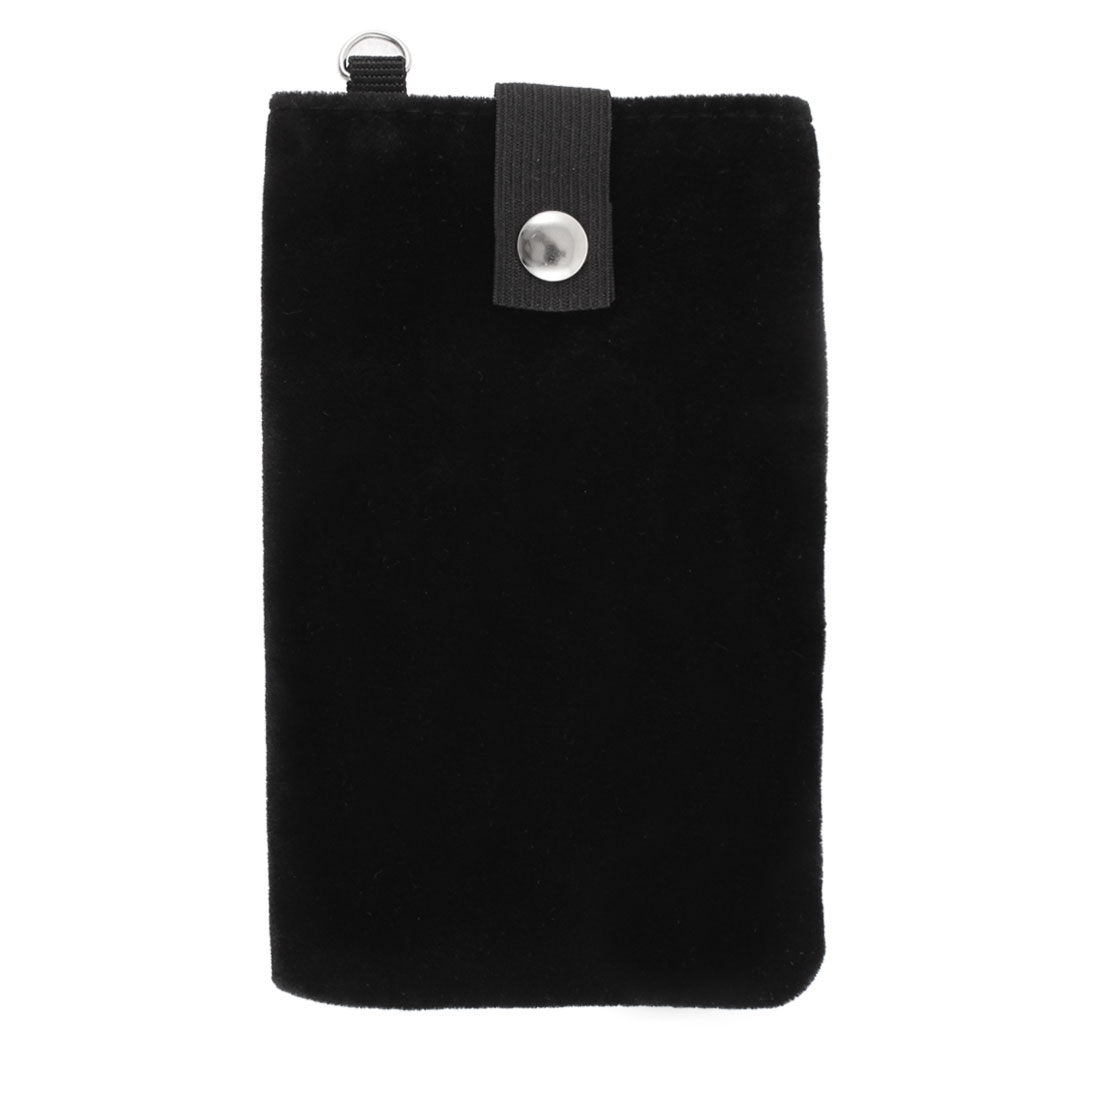 Velvet Magnetic Clasp Button Cell Phone Pouch Sleeve Bag Black 16x9.5cm